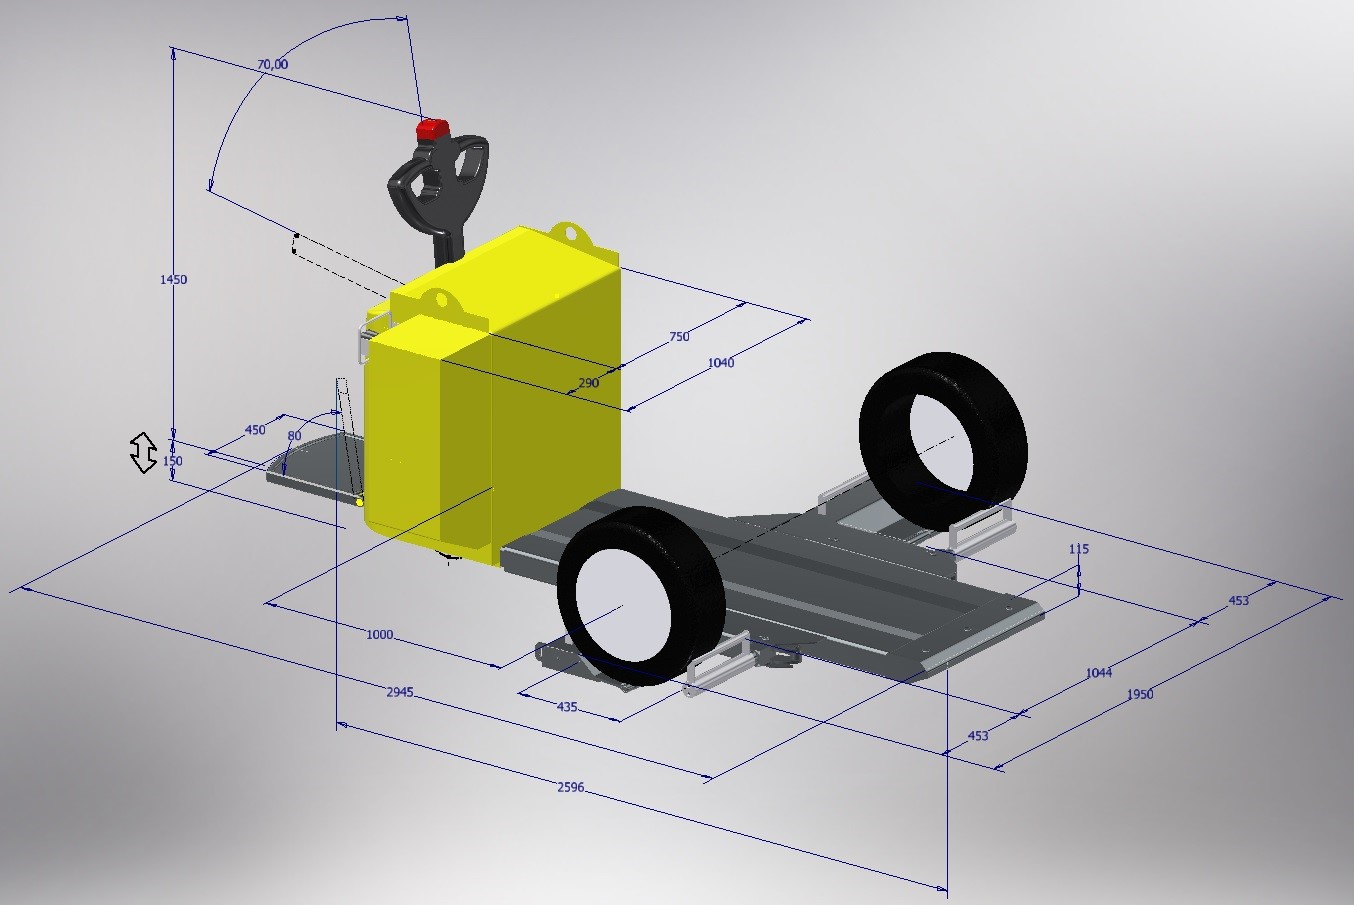 3D modeling of the 300 mm model of the CARTRACT 2 vehicle mover